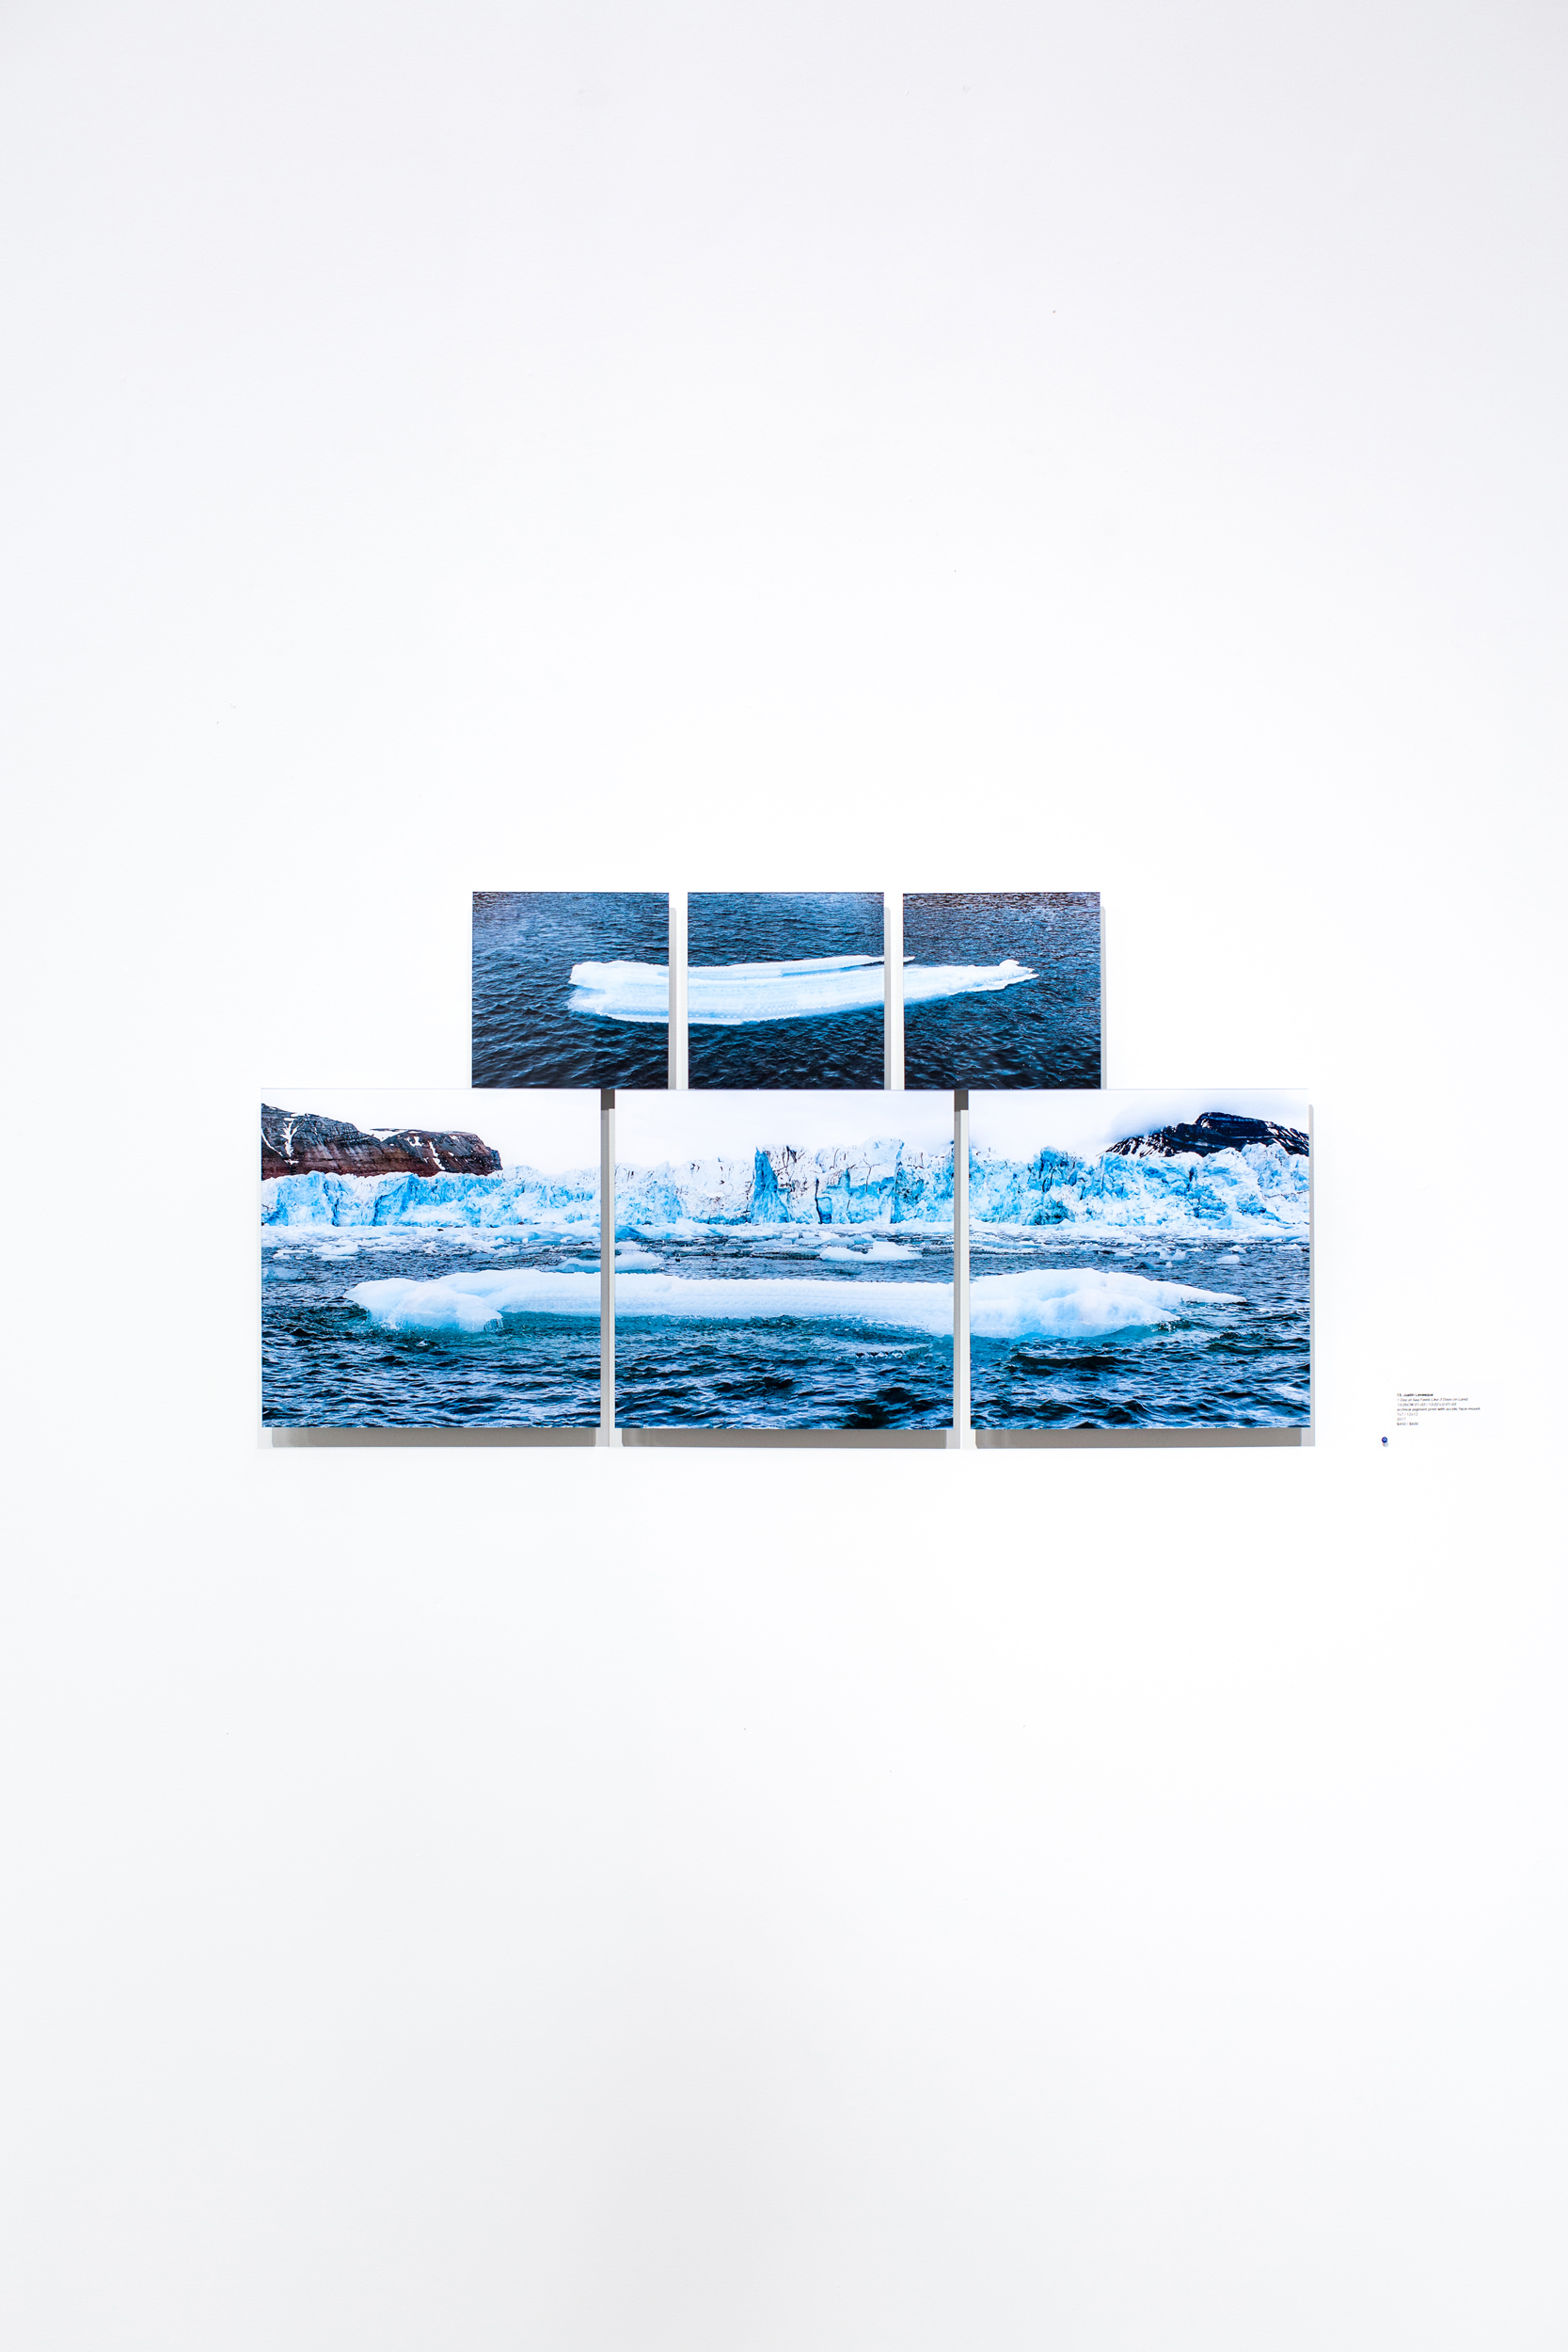 Justin Levesque, 1 Day At Sea Feels Like 3 Days on Land, archival pigment print with acrylic face-mount, 7x7, 12x12, 2017